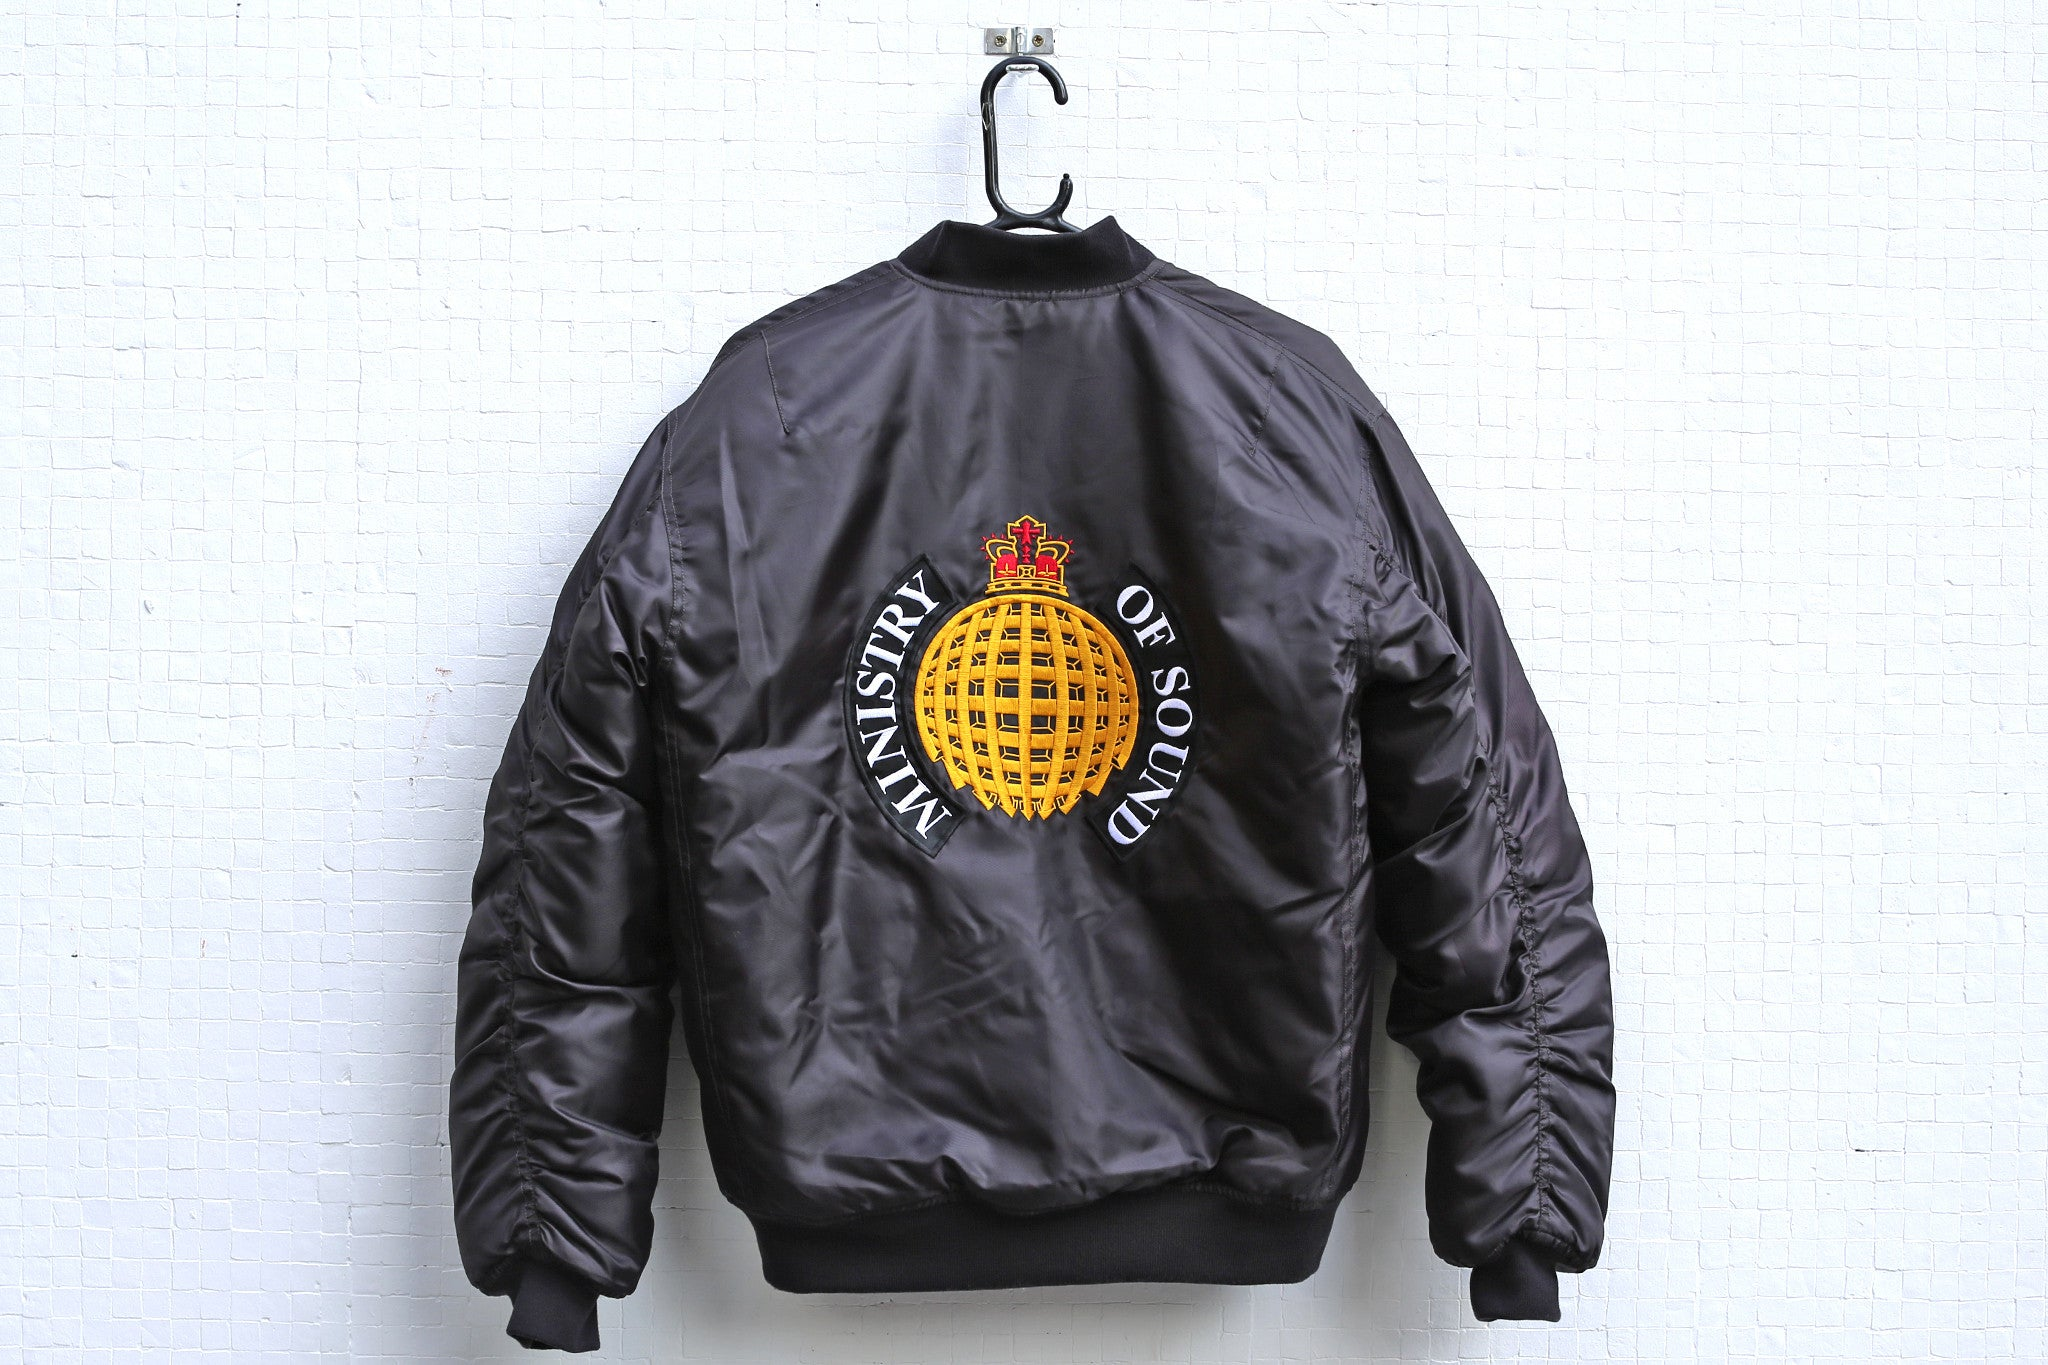 '91 Black Bomber Jacket - Ministry of Sound Store